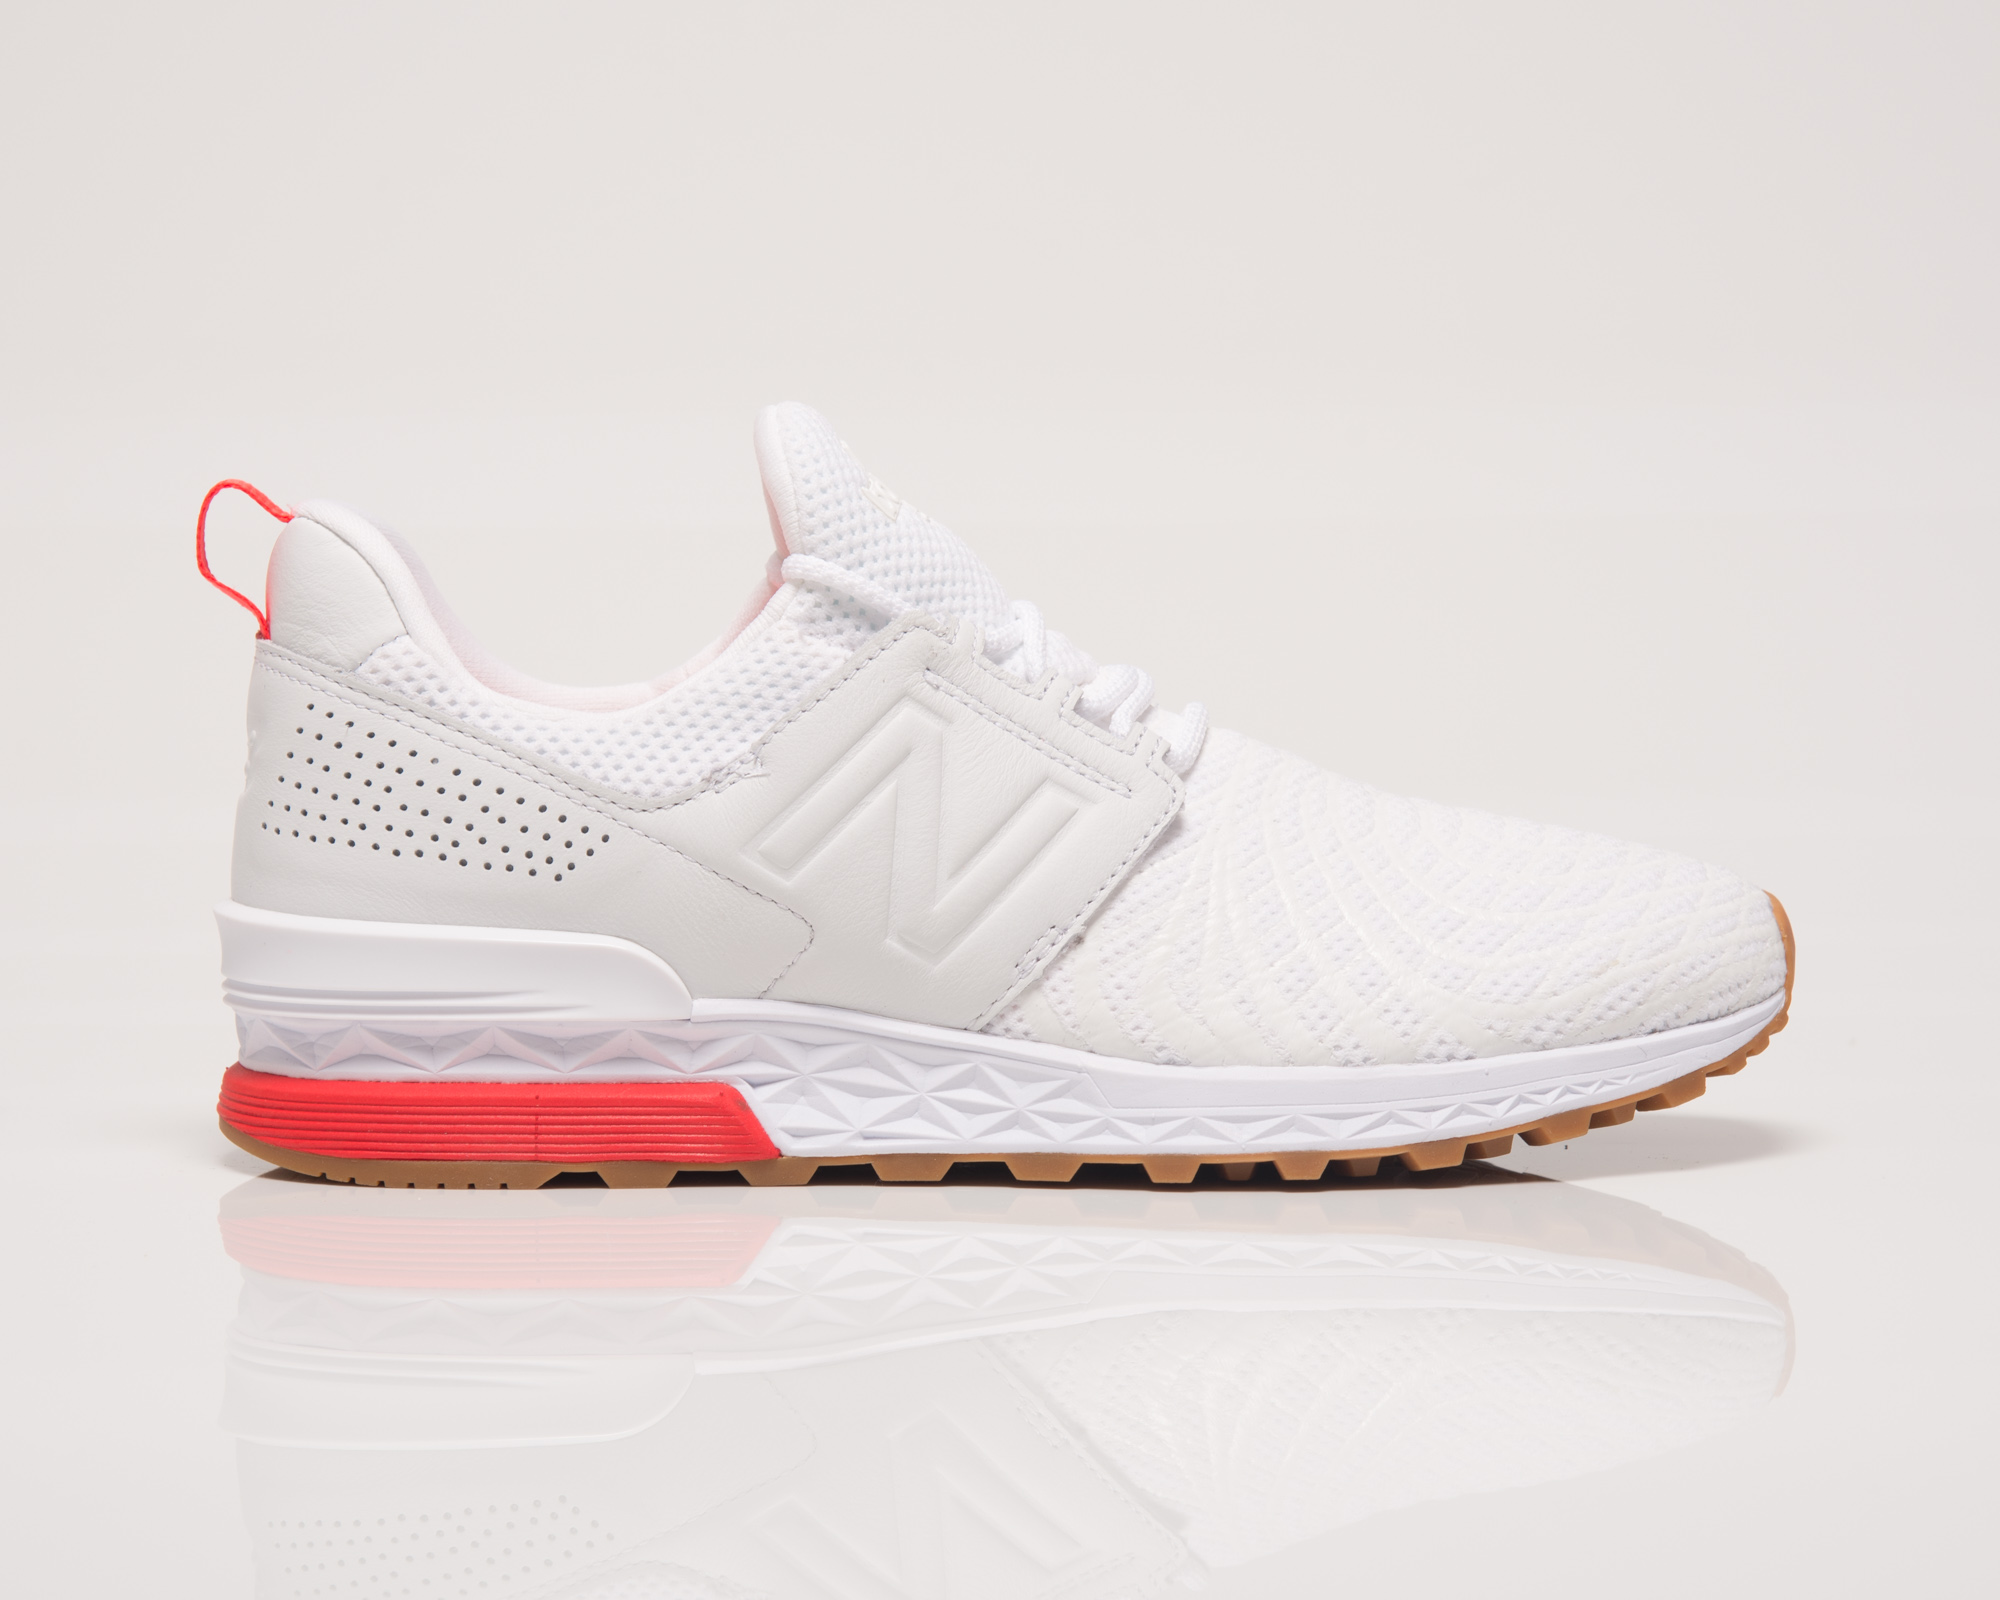 reputable site 08a2b d58b5 New Balance 574 Sport - Shoes Casual - Sporting goods | sil.lt